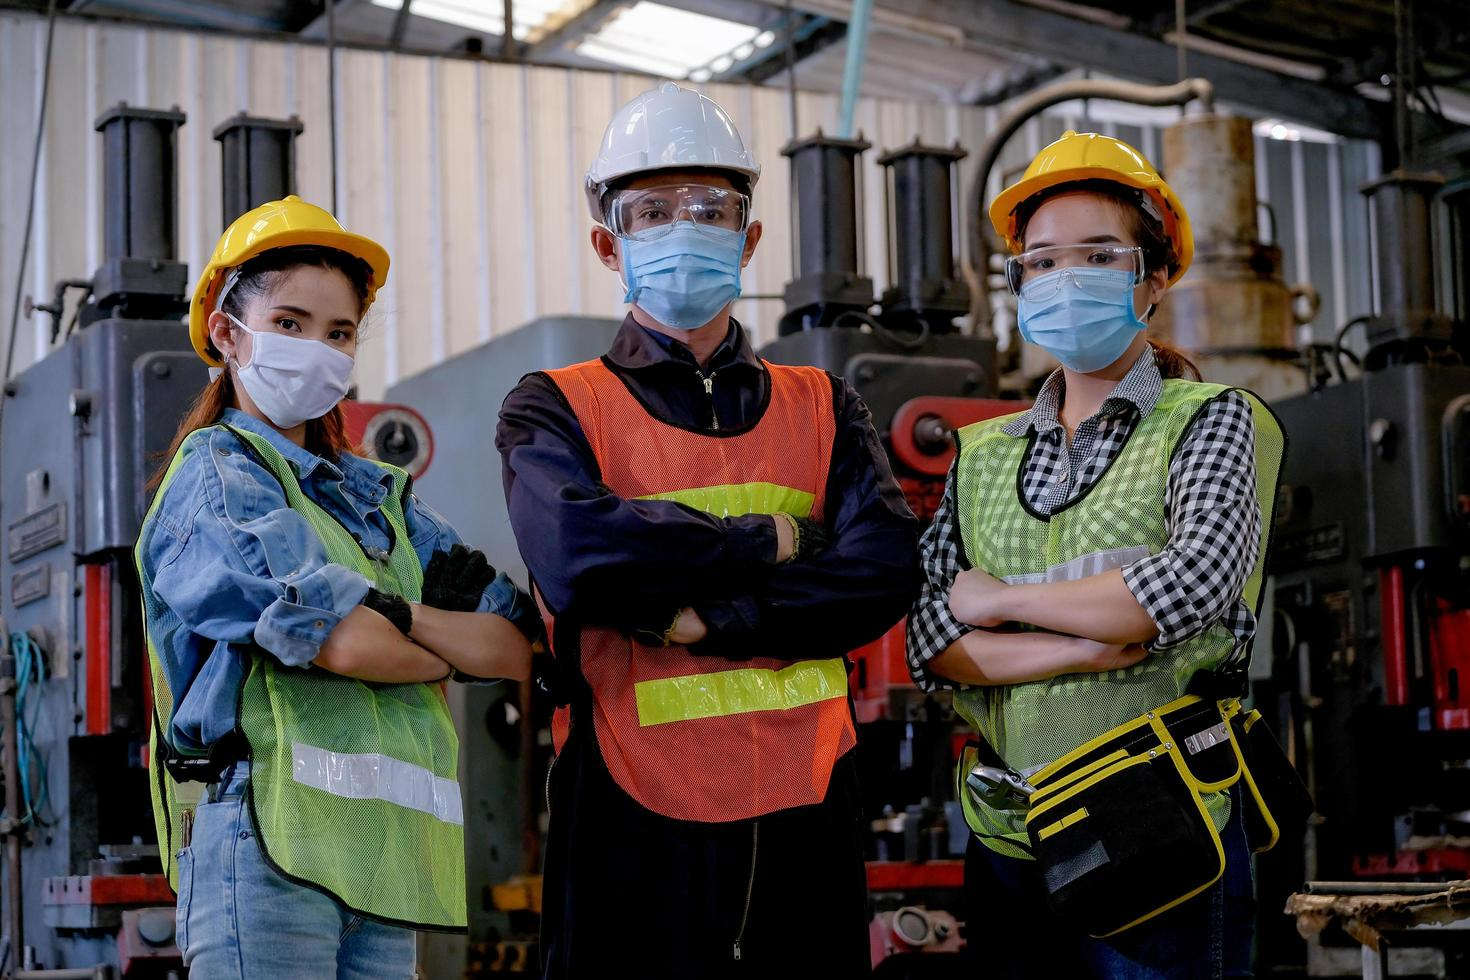 Group of technicians standing together at work photo